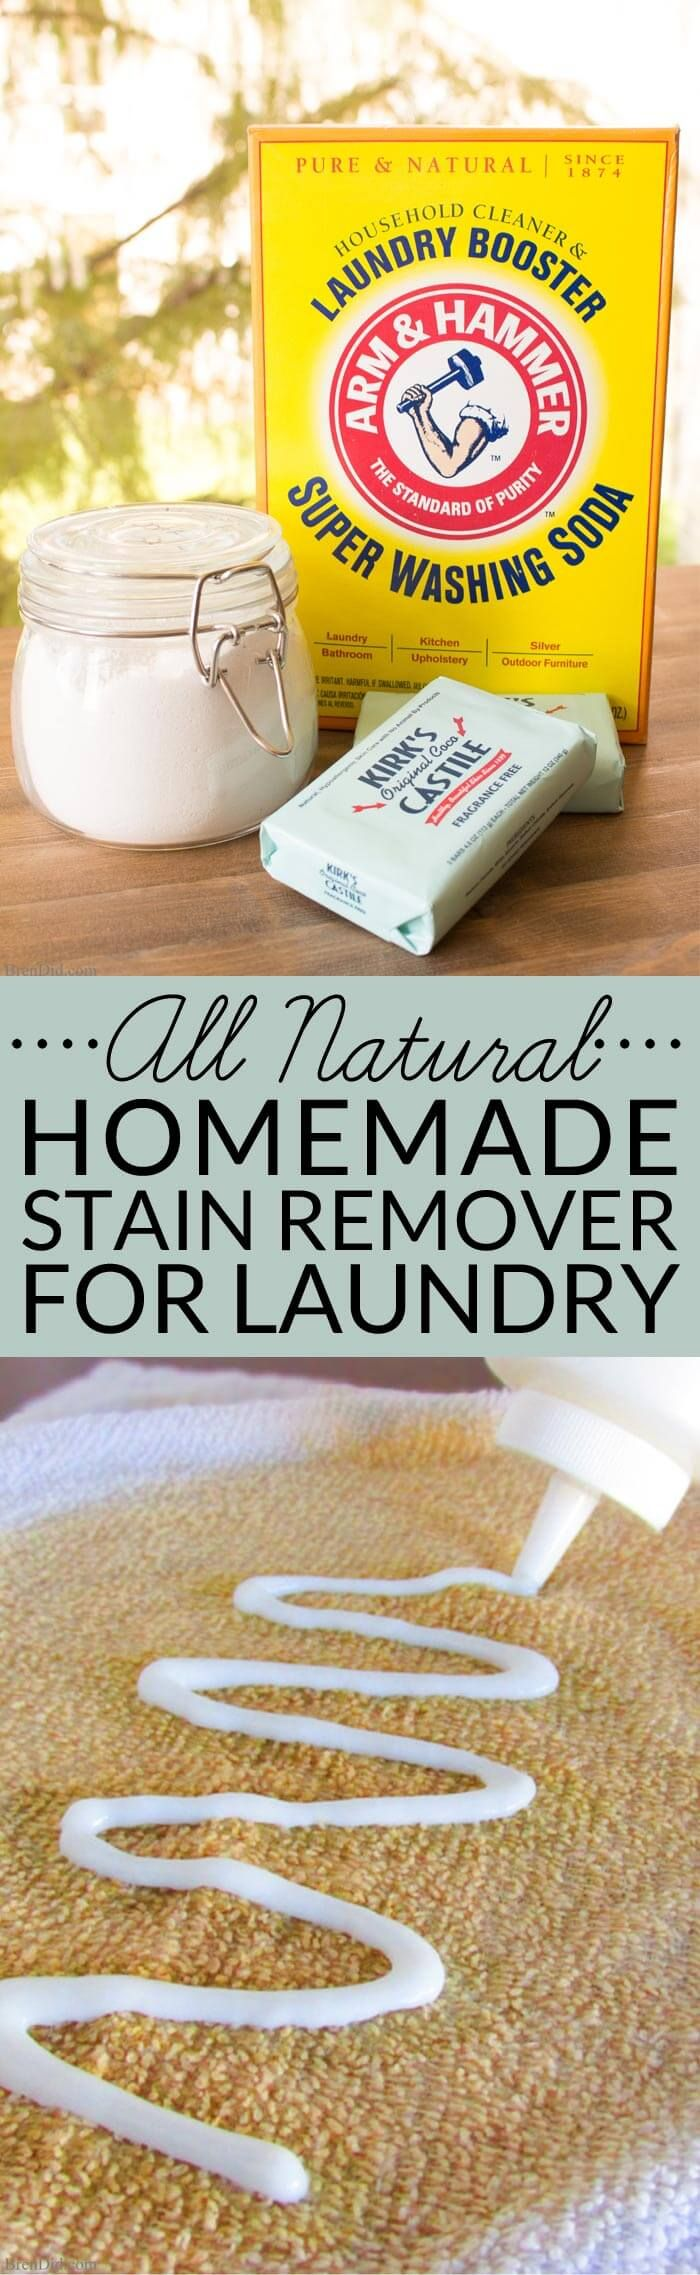 This All-Natural Homemade Stain Remover for Laundry is a simple DIY that makes an effective stain fighter that you can feel good about using. It rates and A on the EWG healthy cleaners scale and  only cost pennies to make!